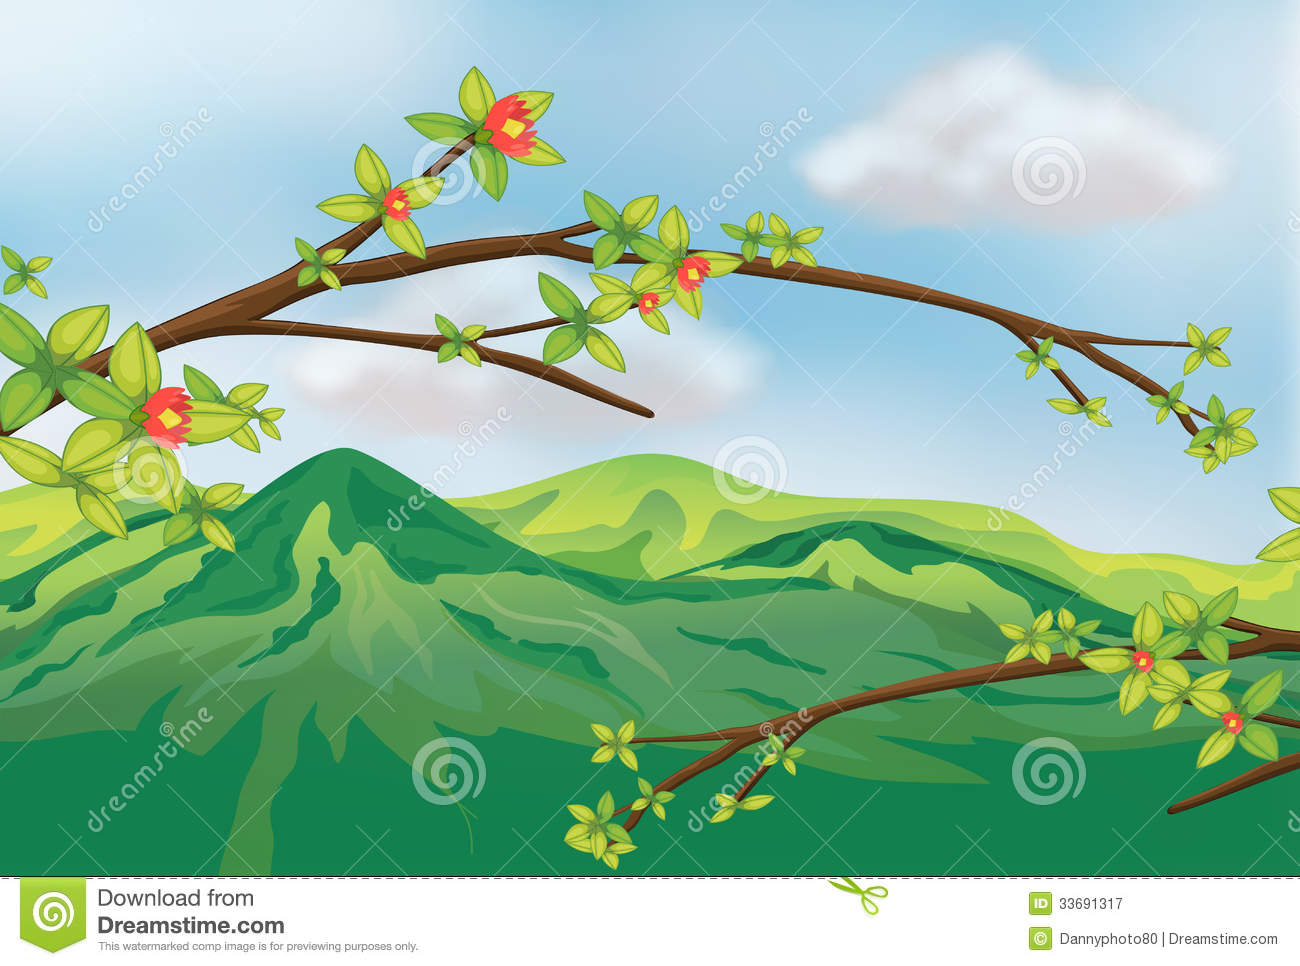 Scenic clipart natural scenery #6